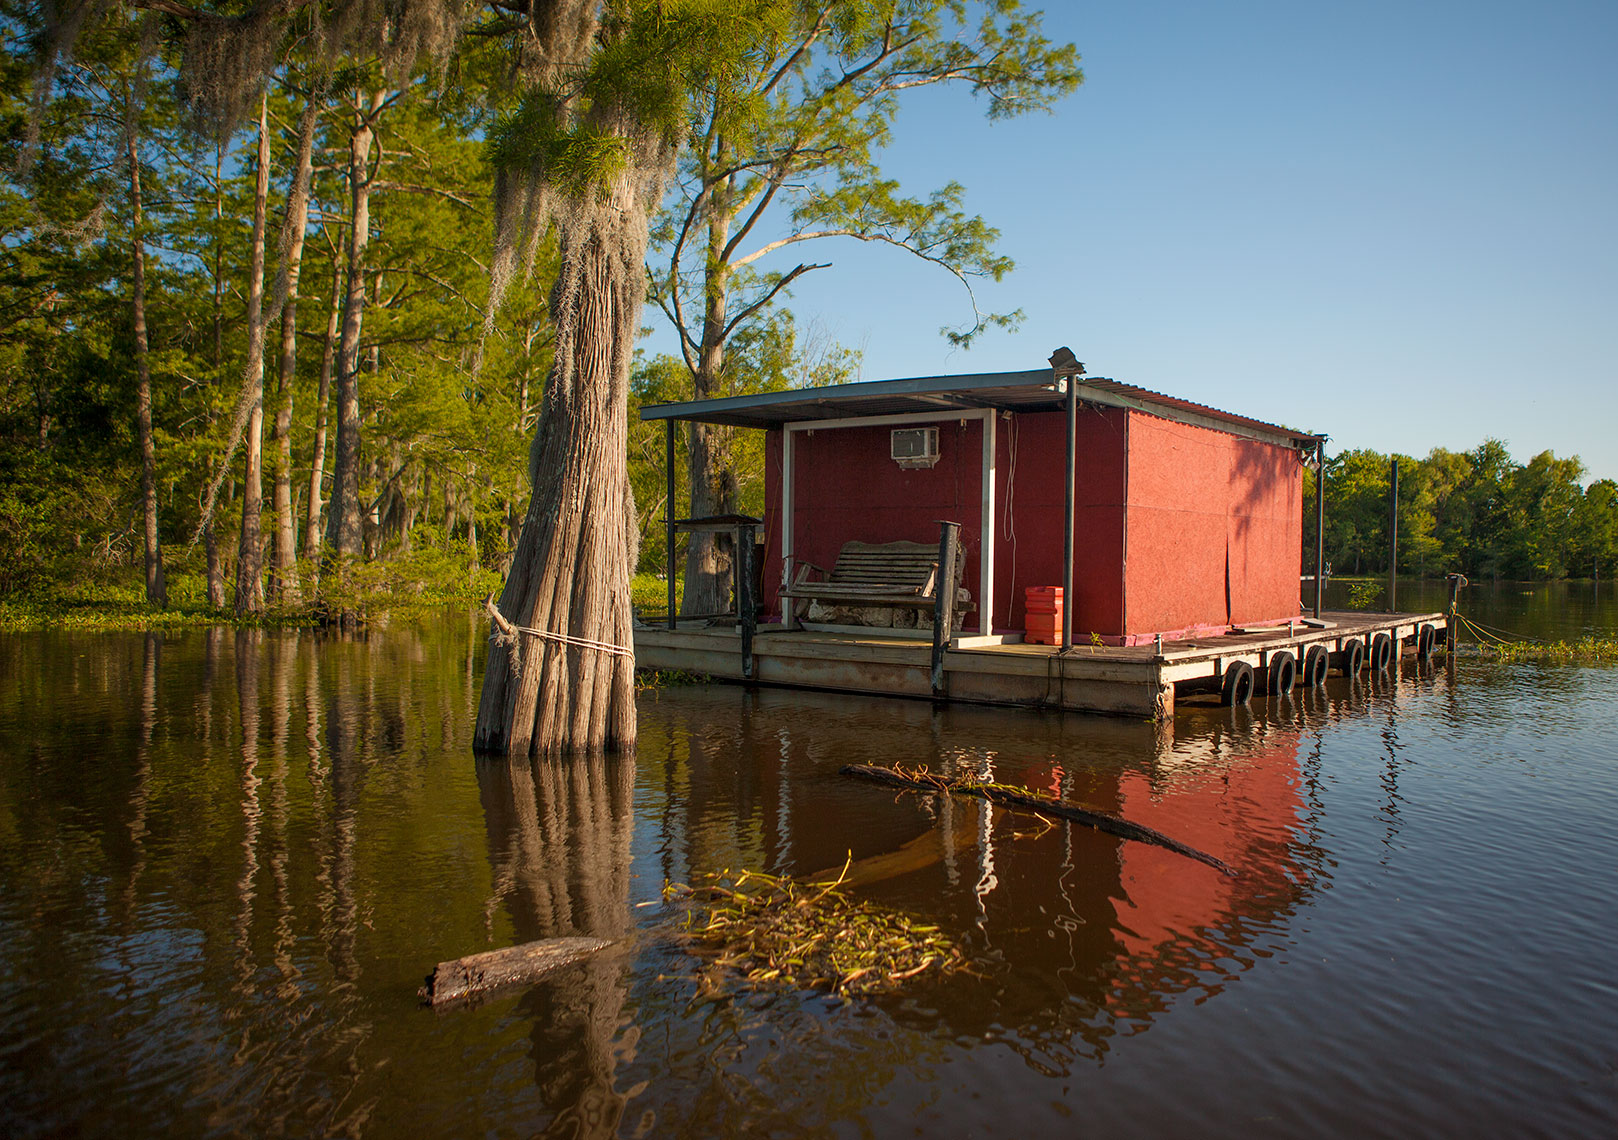 Kris_Davidson_Louisiana_Swamp_Camp_Fishing_030